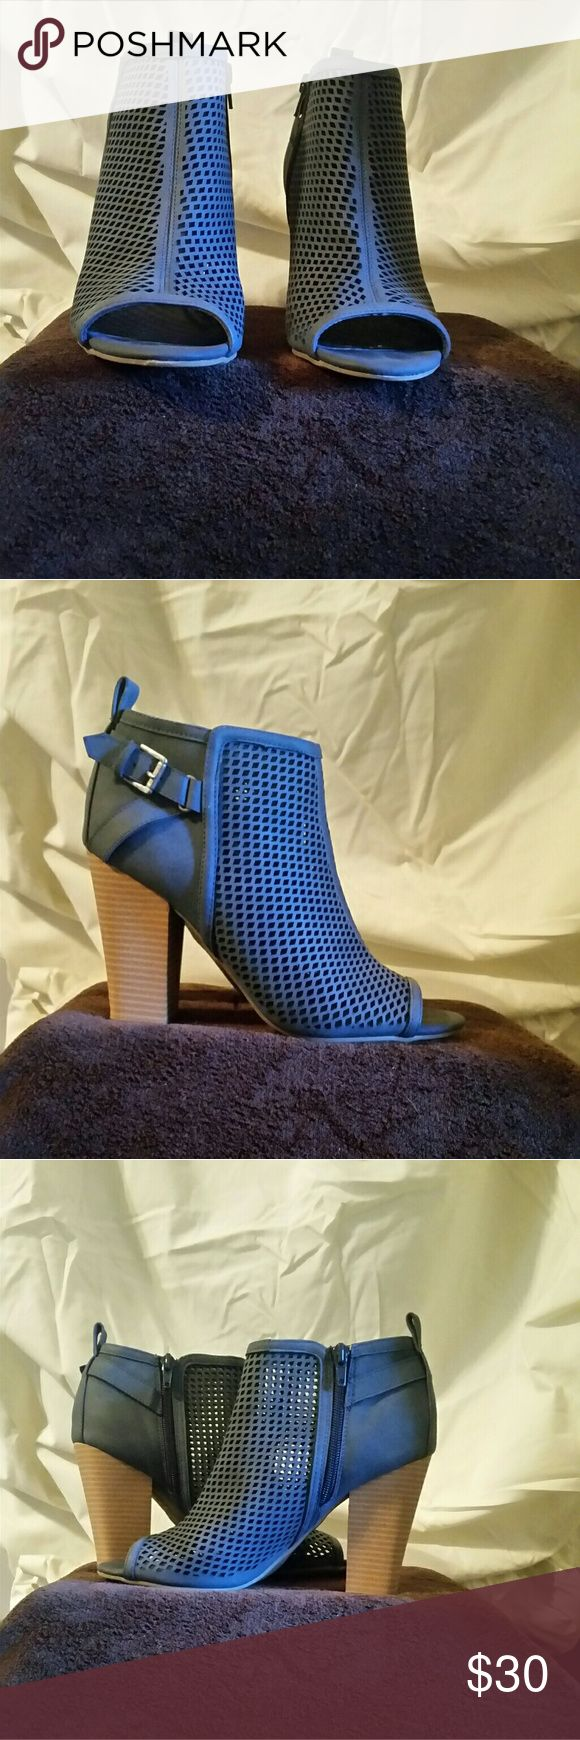 G by Guess Jersey Peep toe Bootie 3.5 inch heel ankle bootie. These were worn twice, in excellent condition G by Guess Shoes Ankle Boots & Booties